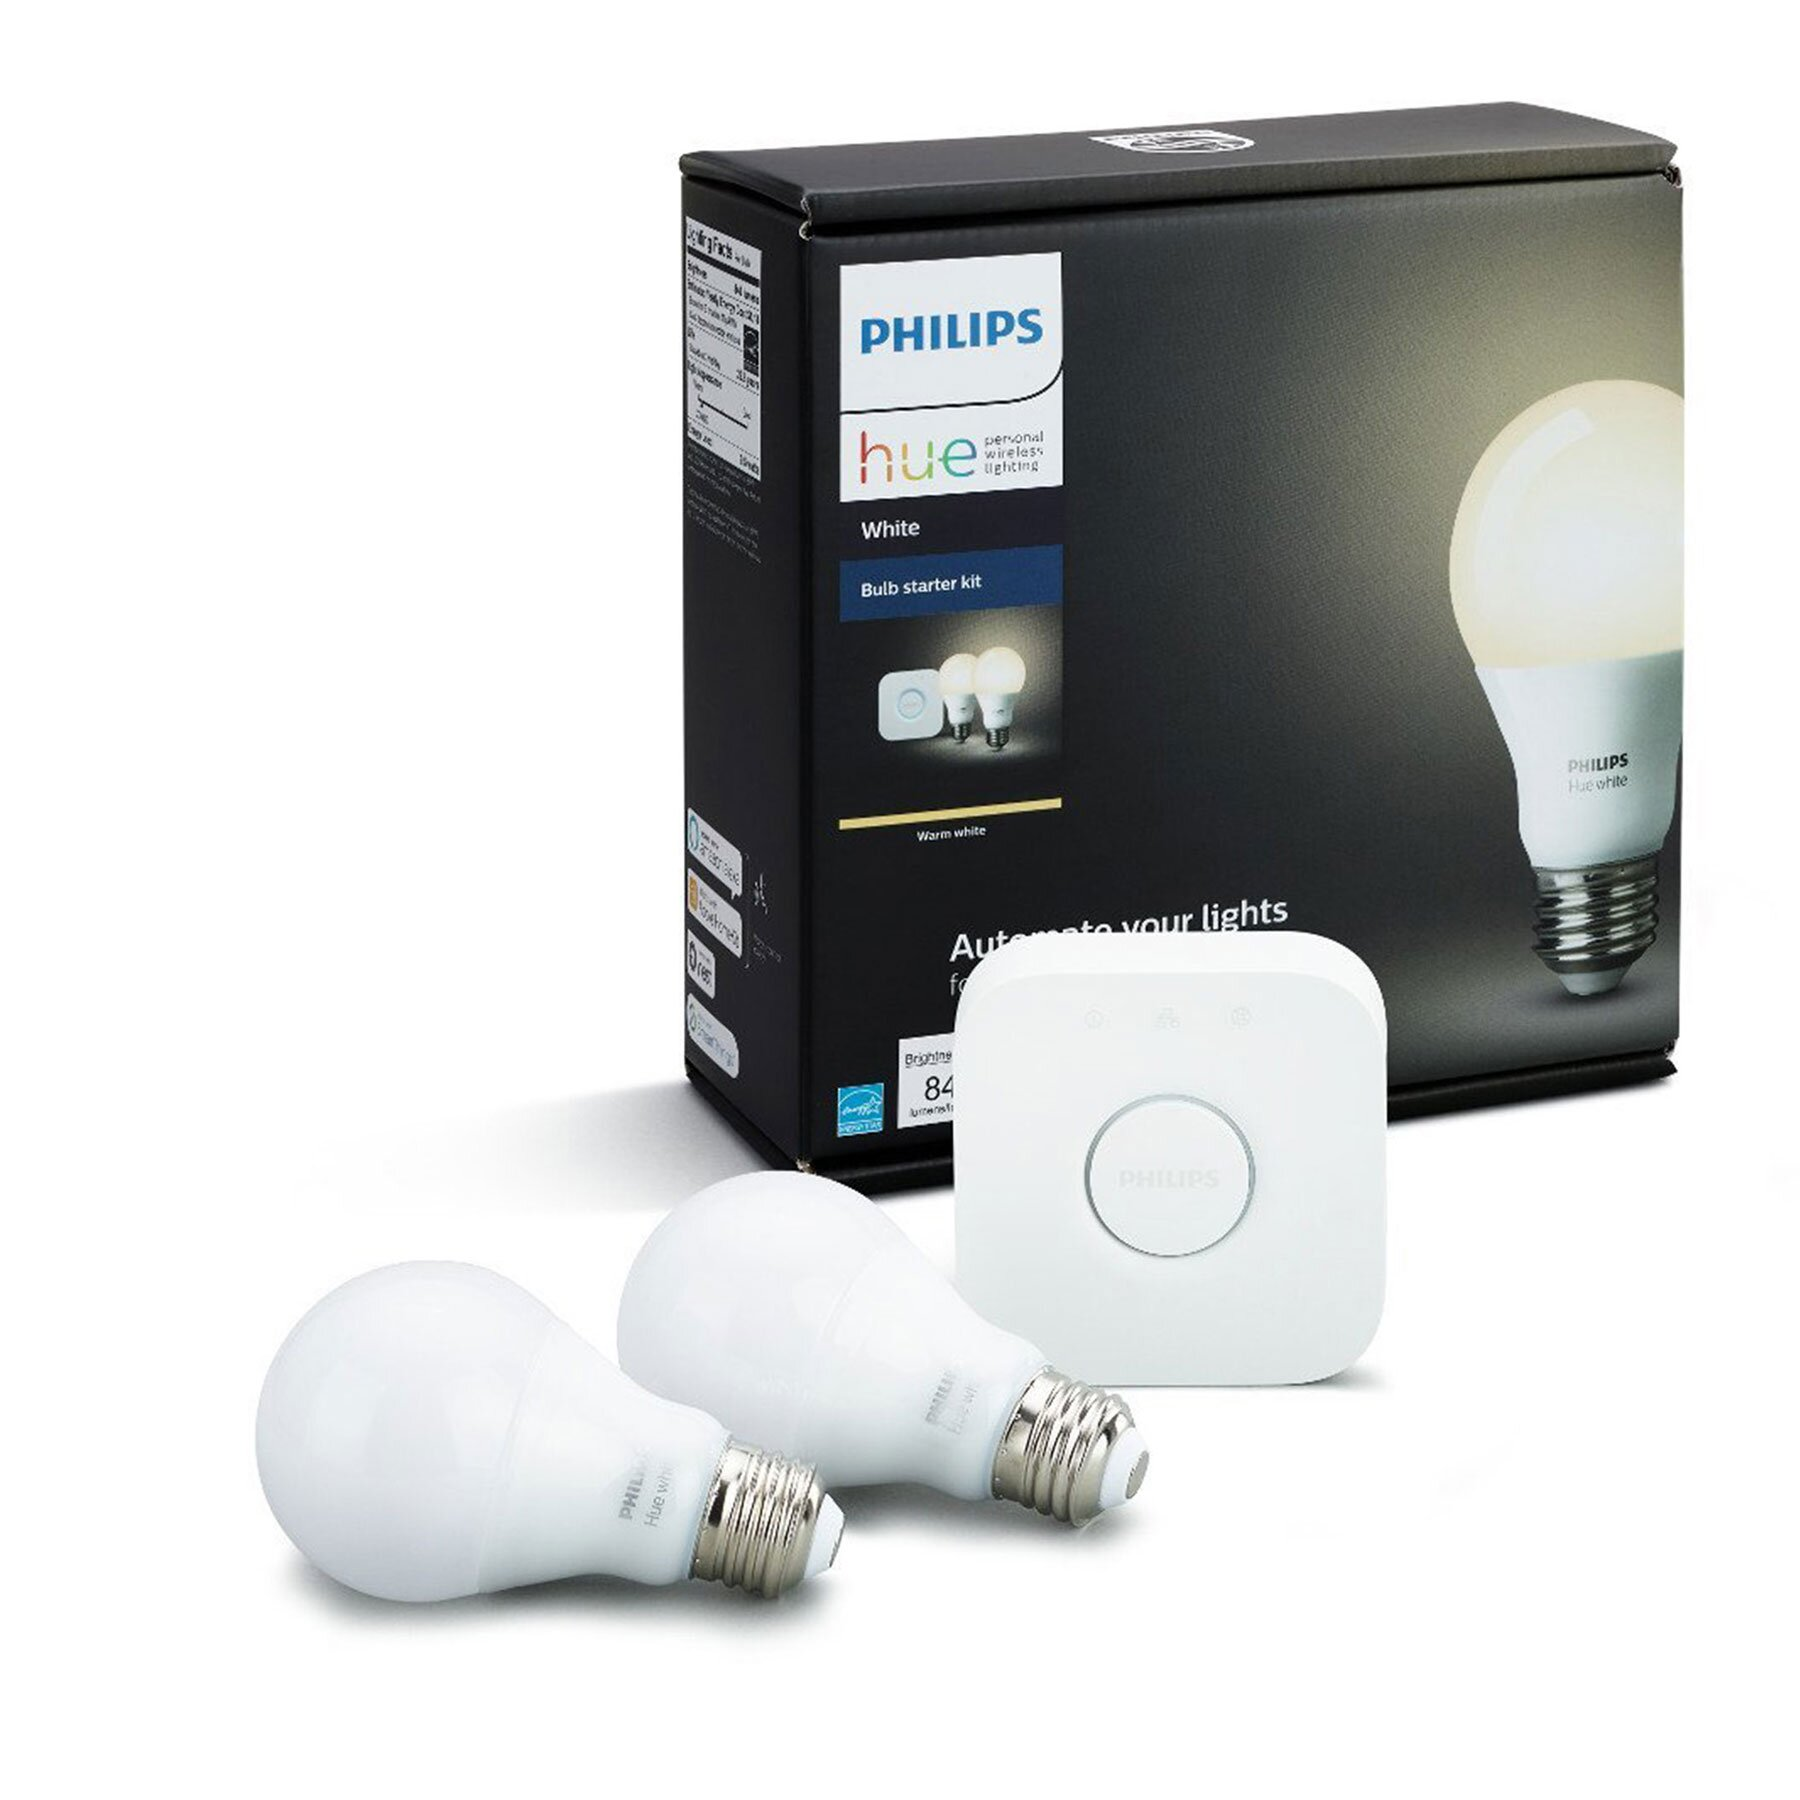 Smart Home Devices: Light Bulbs